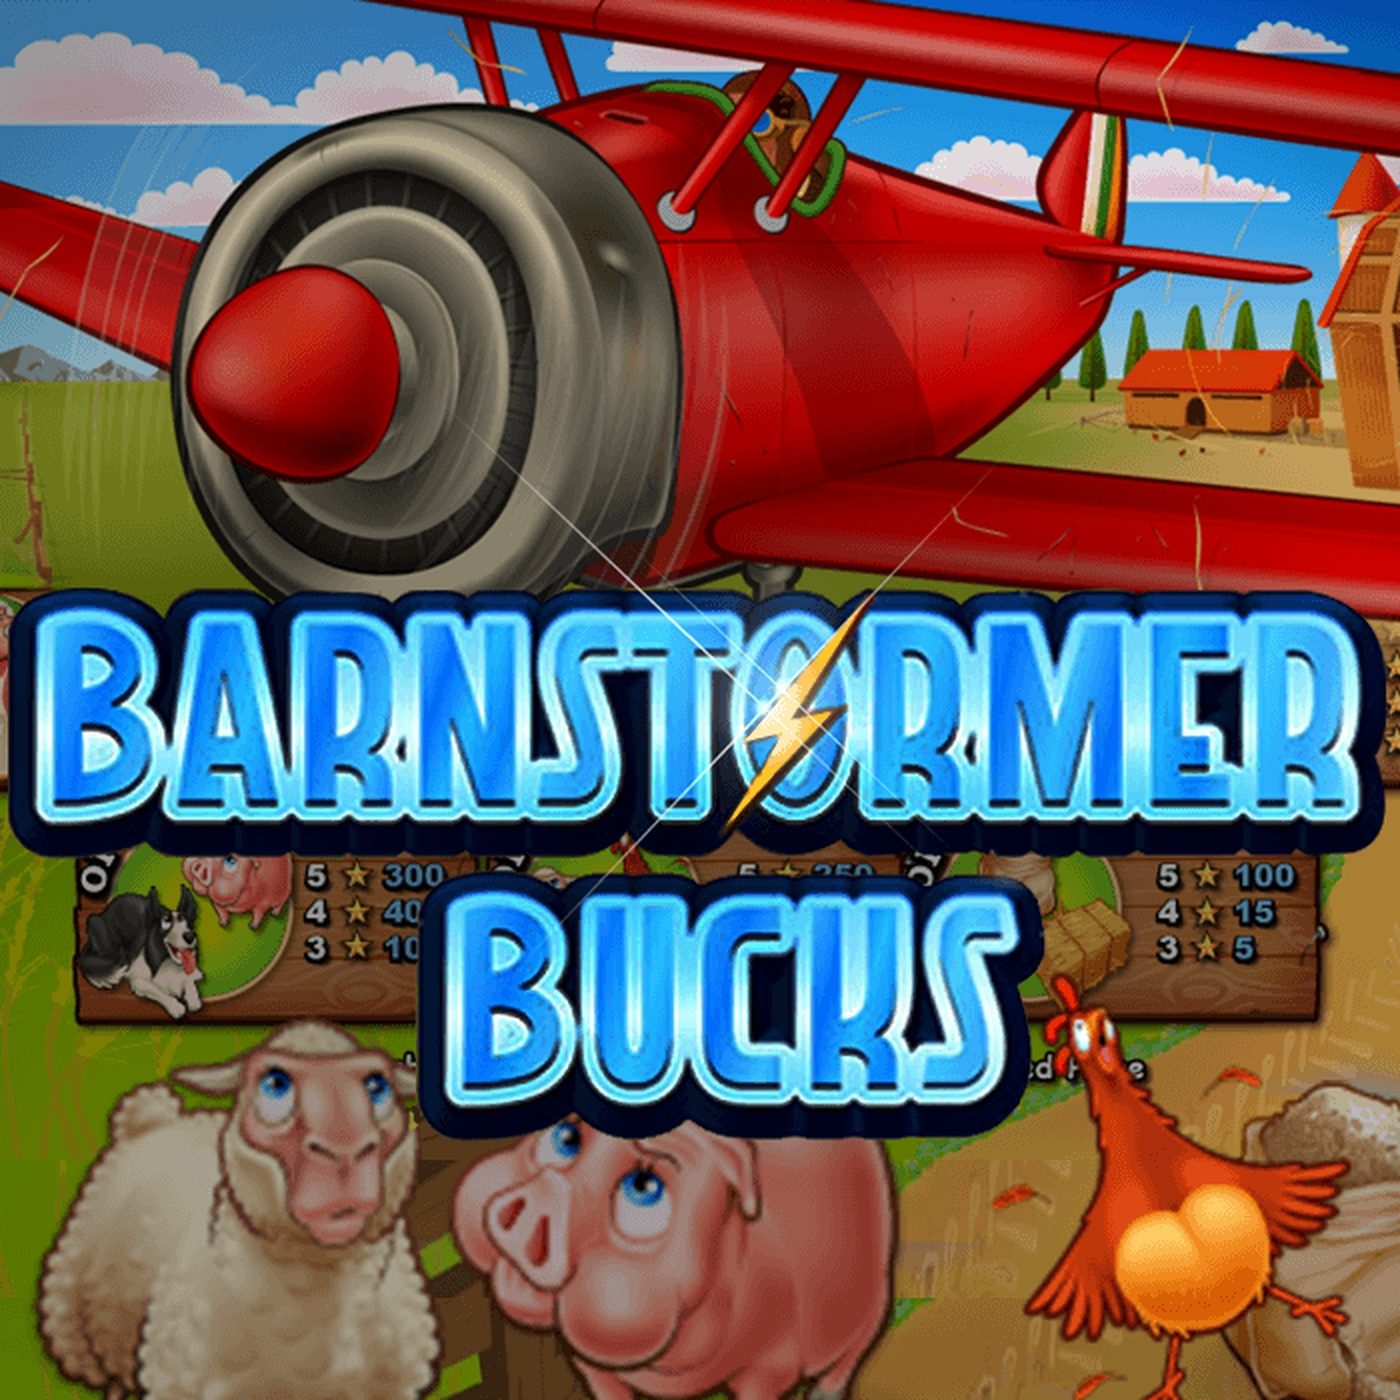 The Barnstormer Bucks Online Slot Demo Game by Habanero